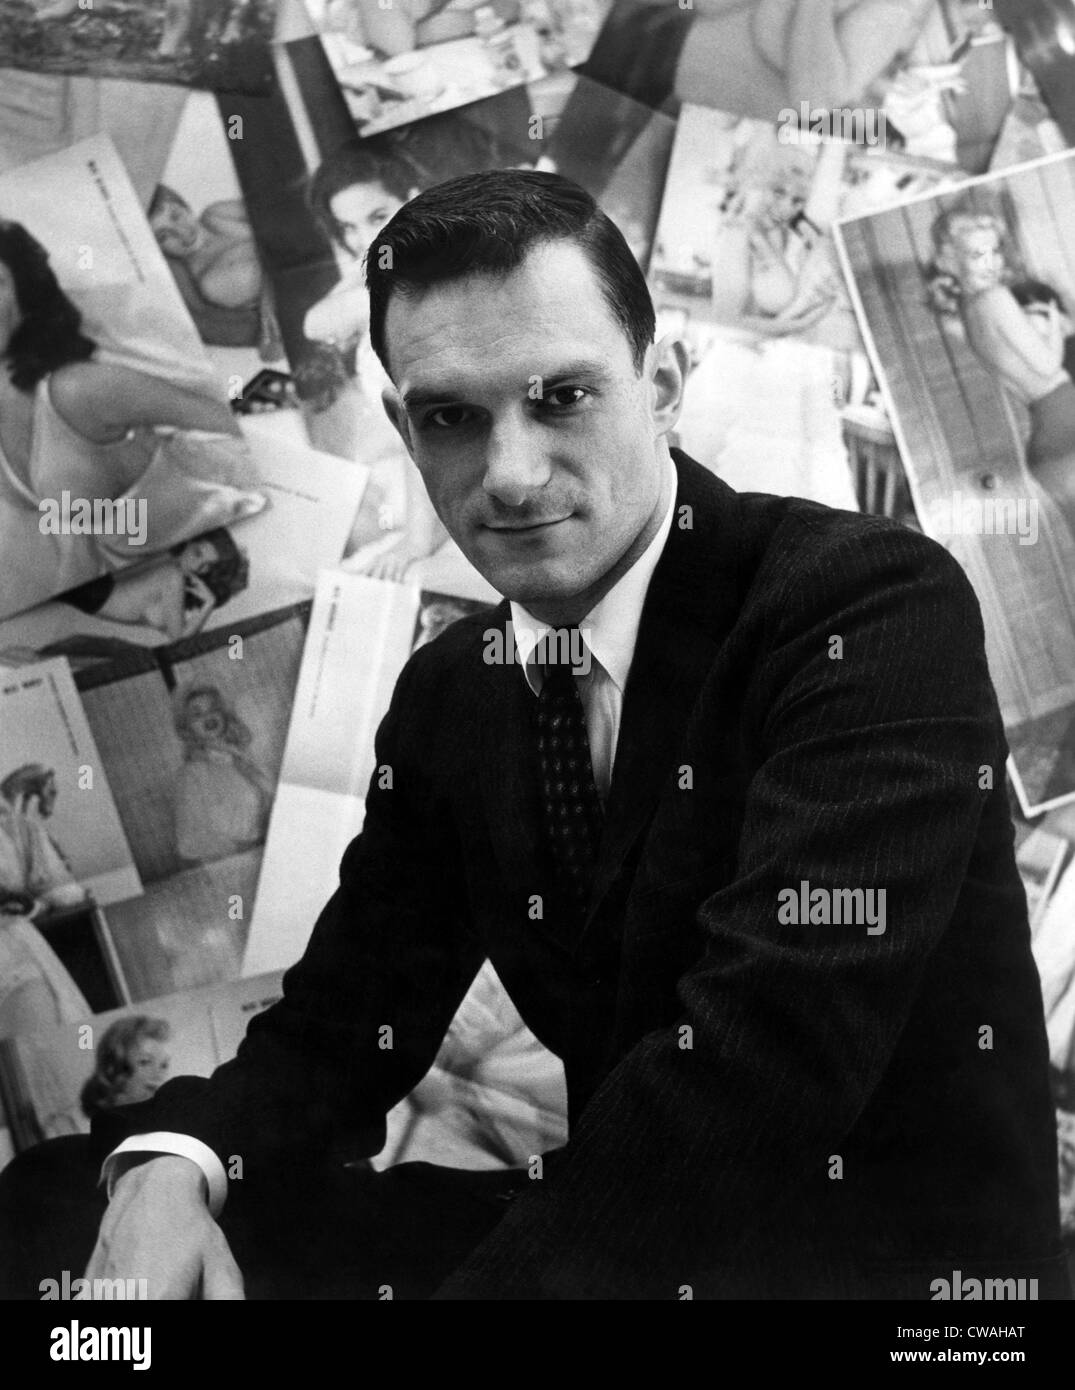 Hugh Hefner, editor-publisher of Playboy Magazine, ca 1950s. Courtesy CSU Archives/Everett Collection. - Stock Image